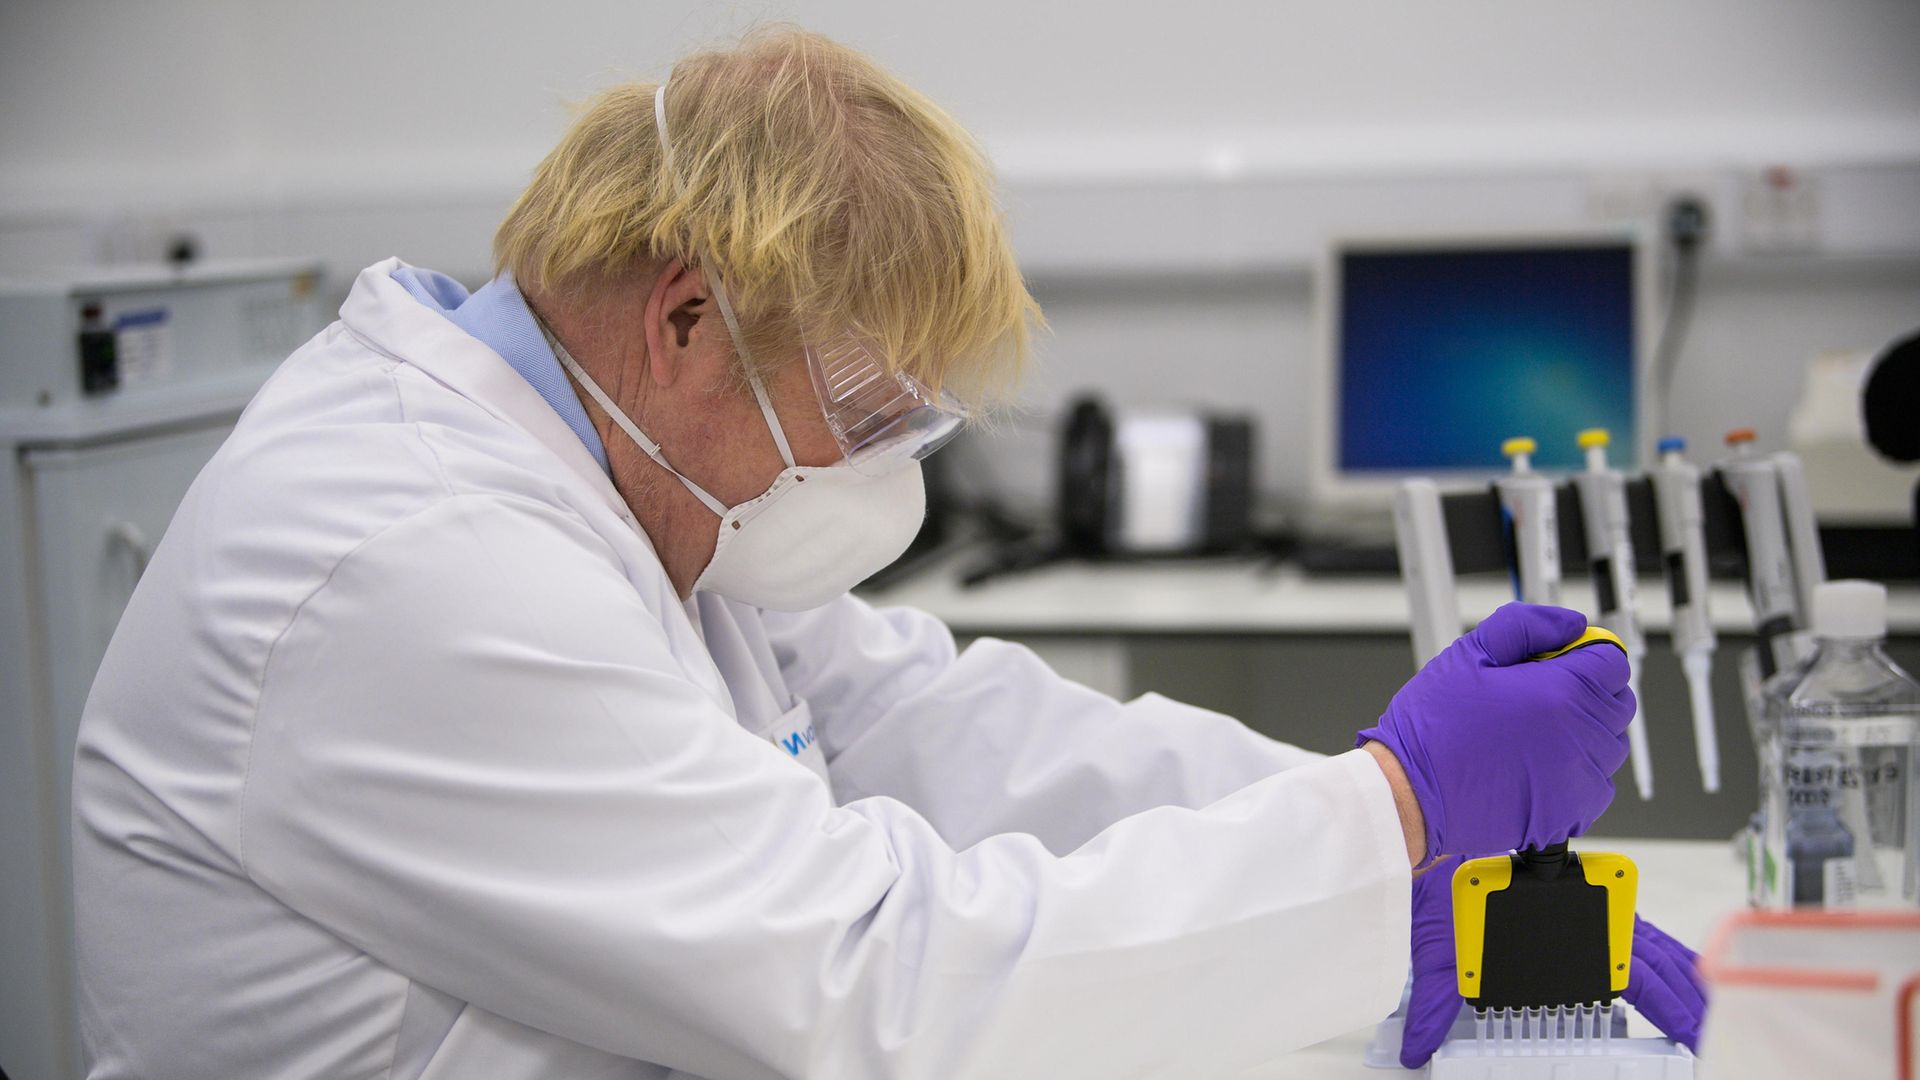 Prime Minister Boris Johnson visits the French biotechnology laboratory Valneva in Livingston during a visit to Scotland. - Credit: PA